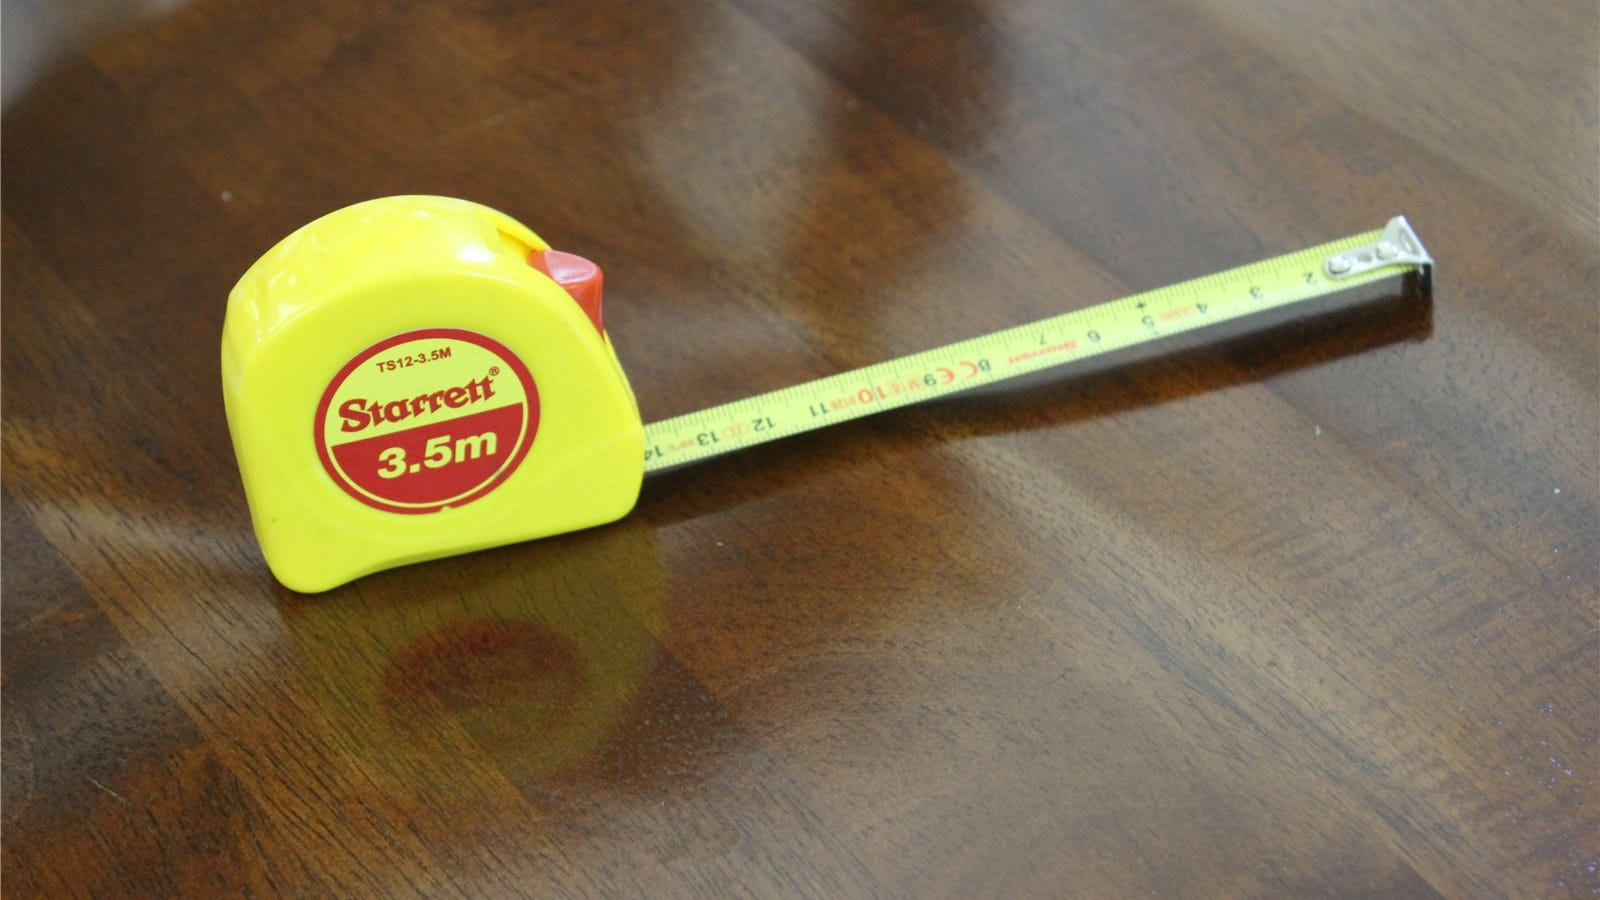 Starrett 3.5m tape measure.